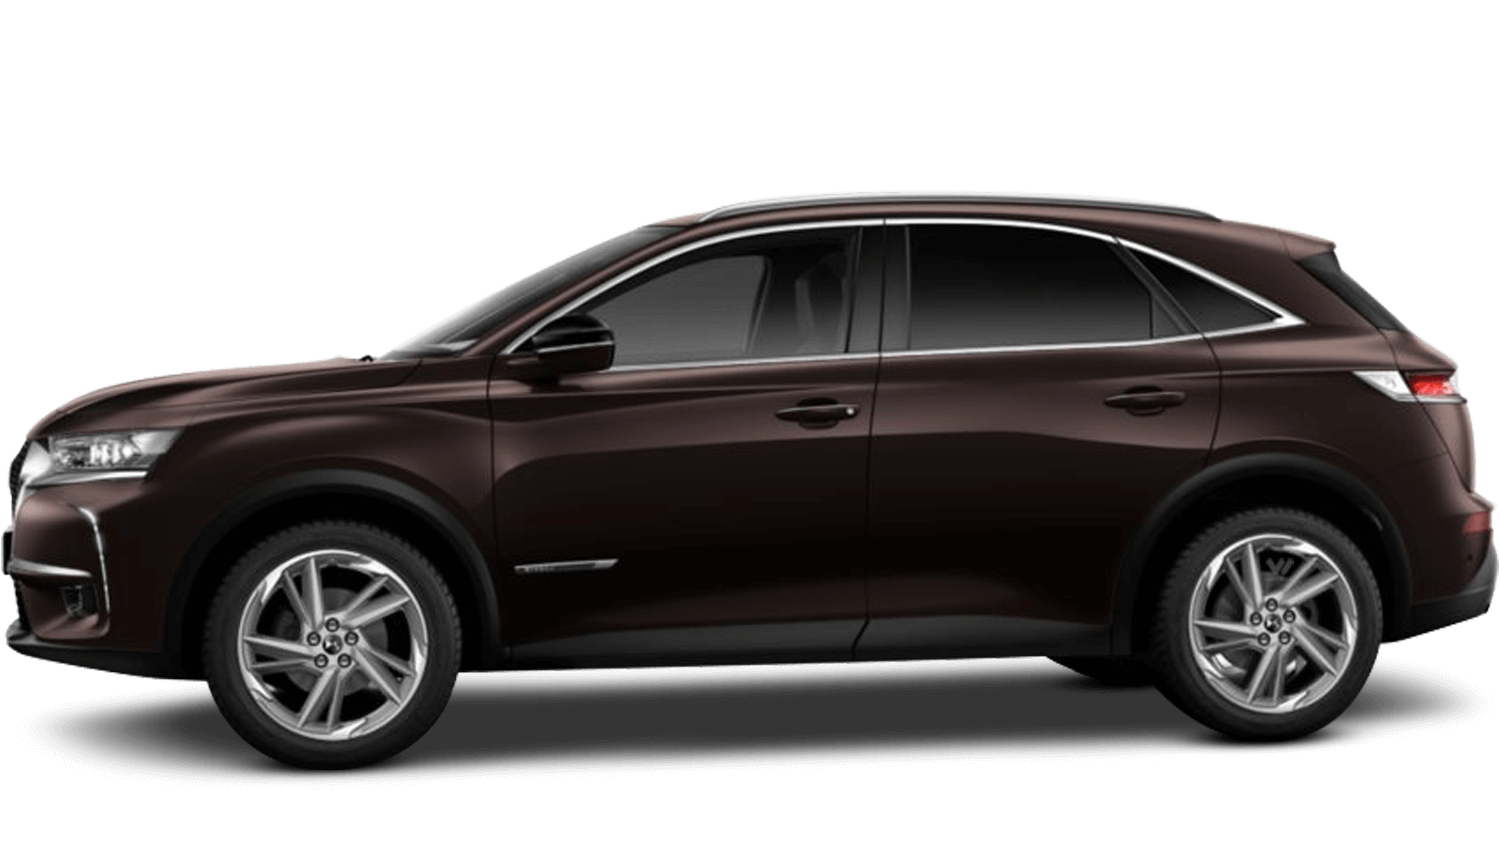 Andradite Brown (Pearl) DS DS 7 Crossback